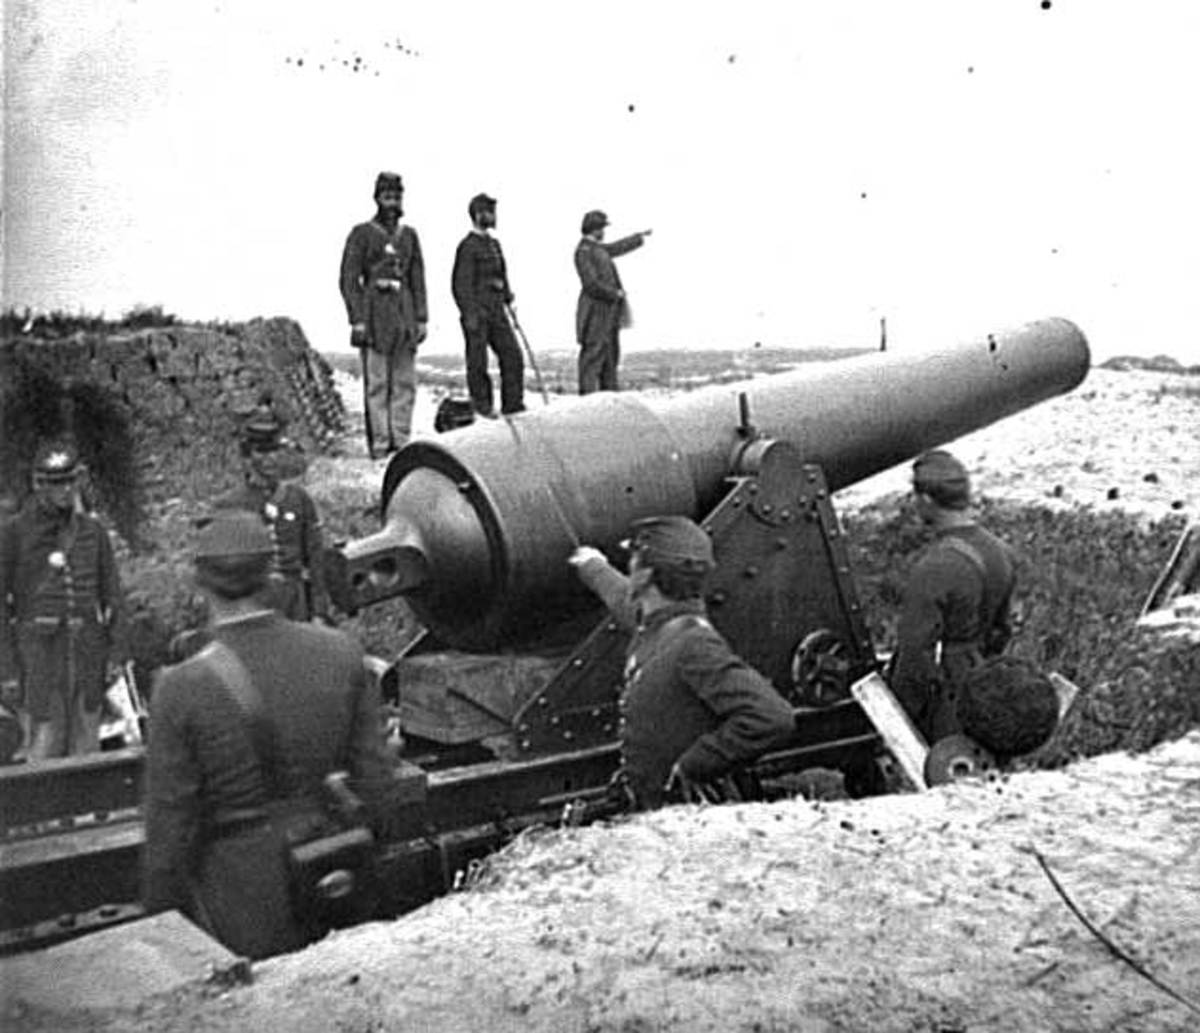 Civil War artillery - cannon fire